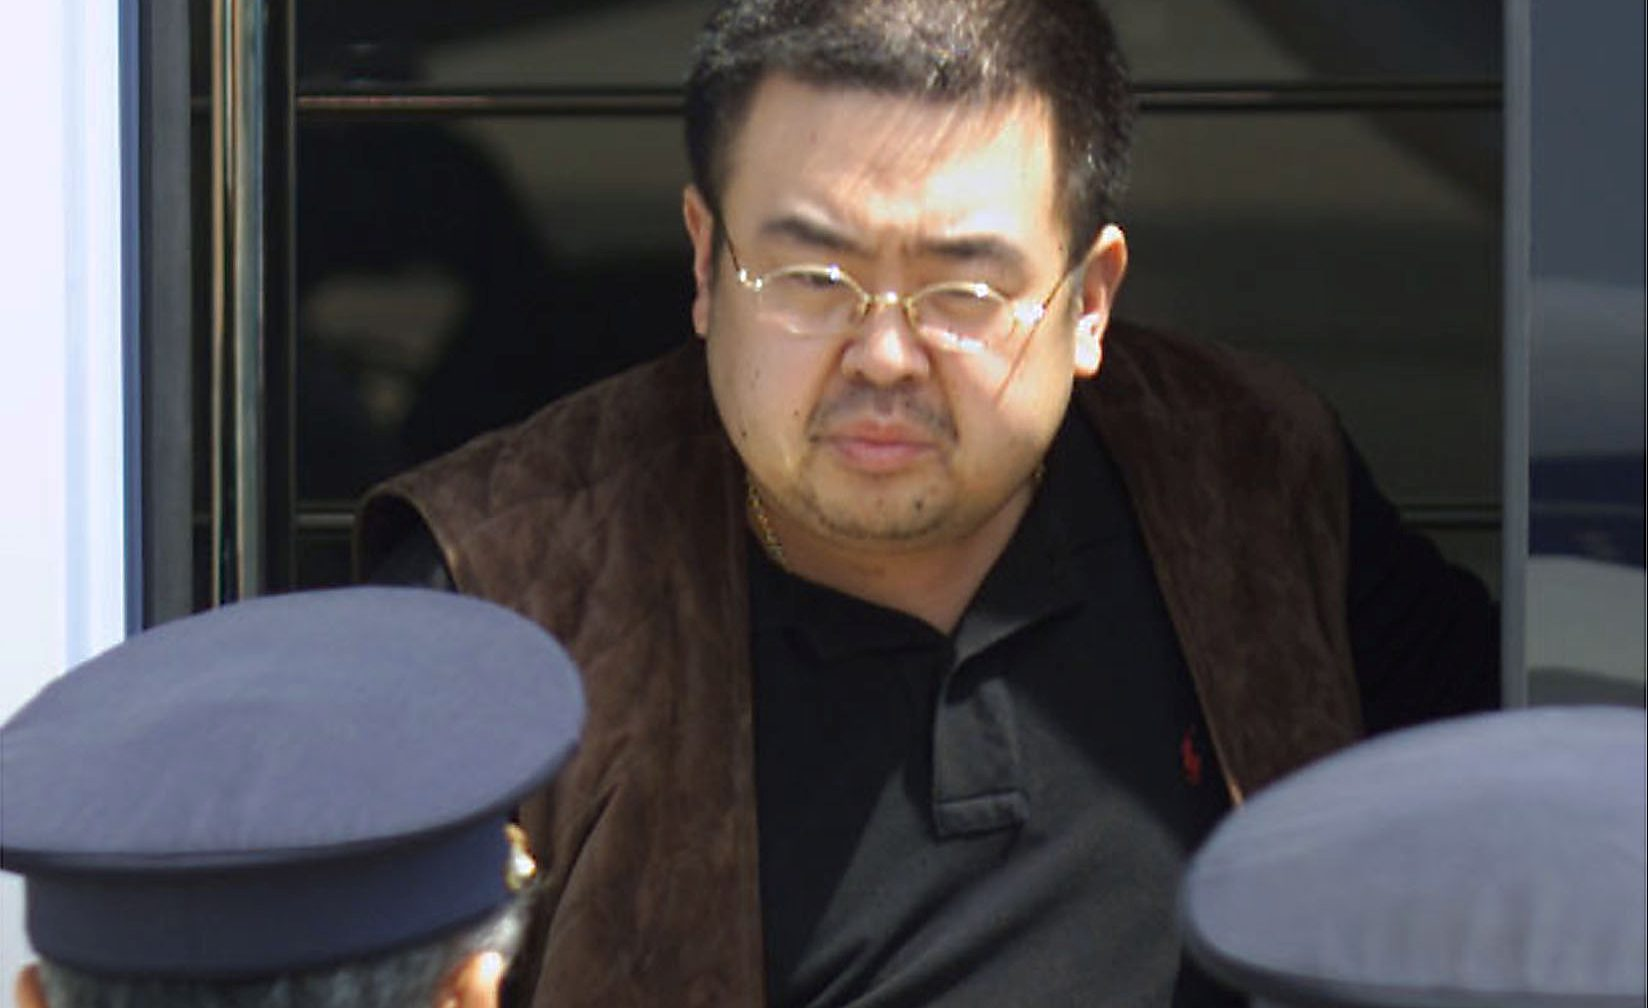 A man believed to be North Korean heir-apparent Kim Jong Nam emerges from a bus as he is escorted by Japanese authorities upon his deportation from Japan at Tokyo's Narita international airport